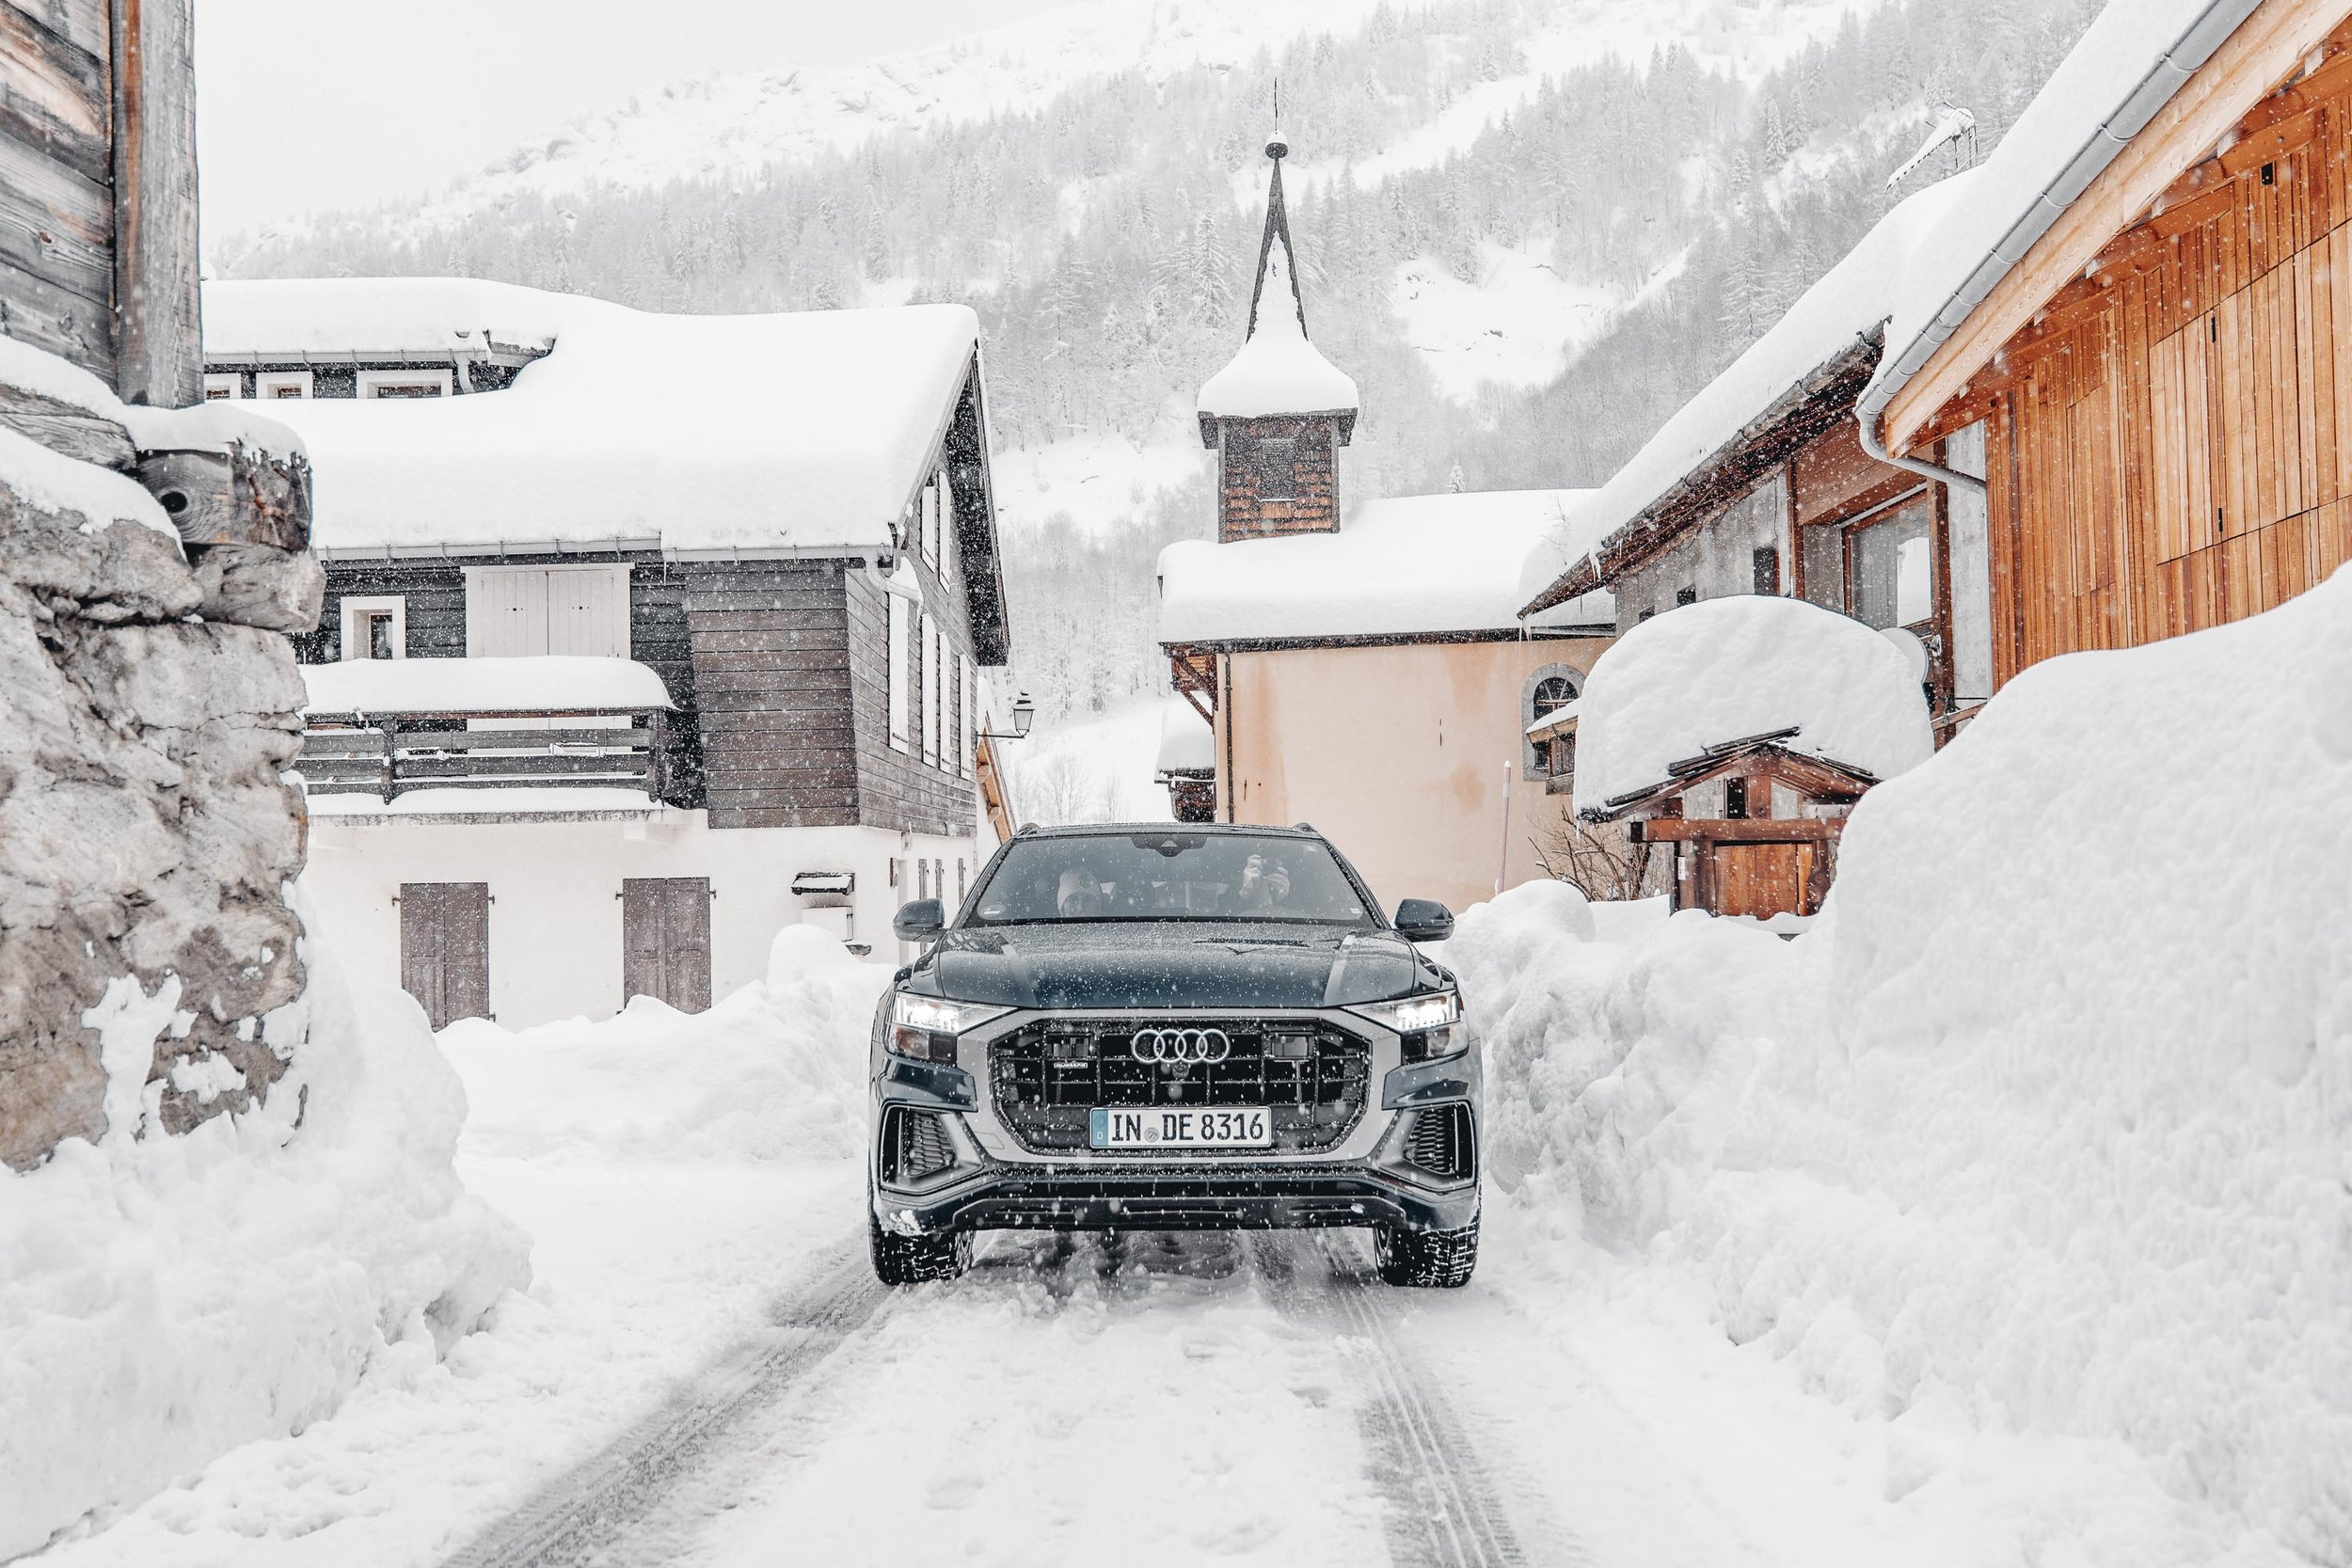 Maximilian-Otto_Best-of-the-Alps_Roadtrip_Winter-2018_34.jpg